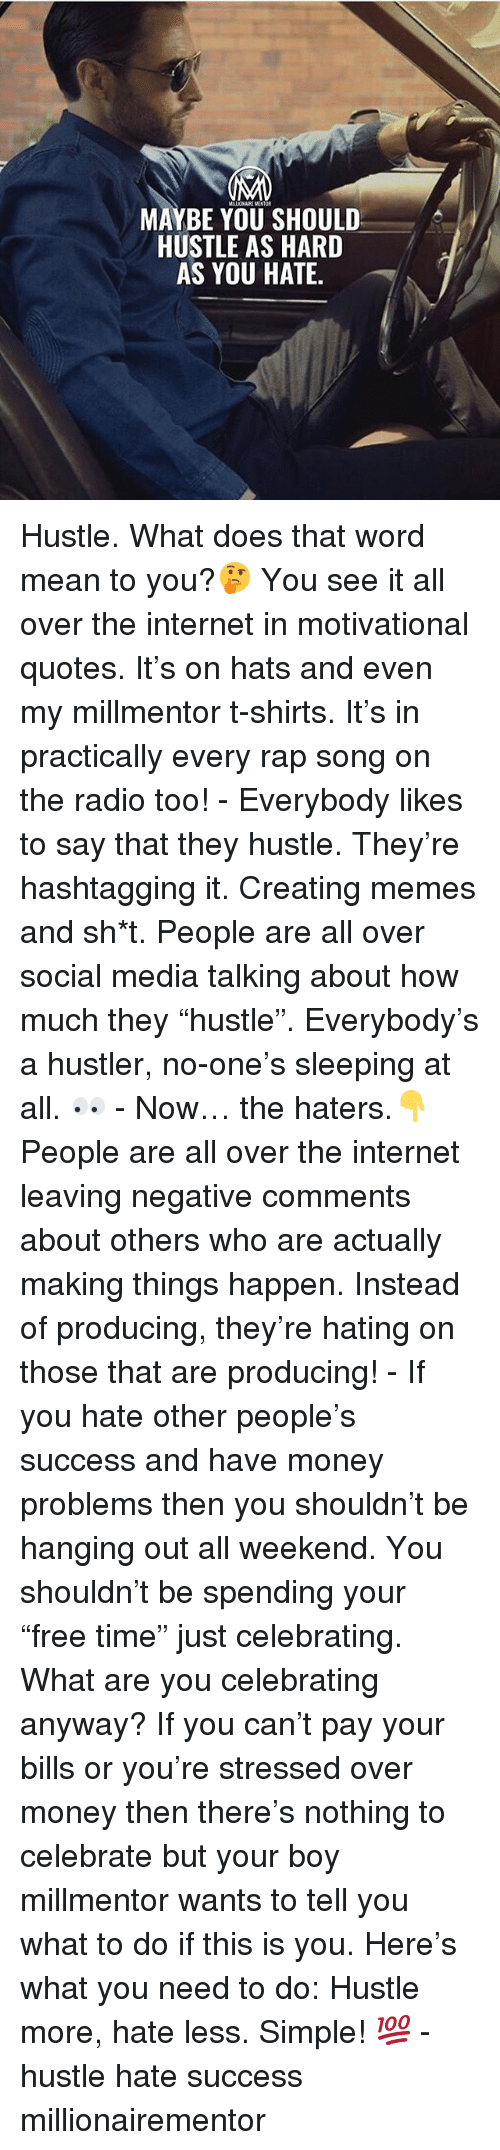 "Hustler, Internet, and Memes: MAYBE YOU SHOULD  HUSTLE AS HARD  AS YOU HATE Hustle. What does that word mean to you?🤔 You see it all over the internet in motivational quotes. It's on hats and even my millmentor t-shirts. It's in practically every rap song on the radio too! - Everybody likes to say that they hustle. They're hashtagging it. Creating memes and sh*t. People are all over social media talking about how much they ""hustle"". Everybody's a hustler, no-one's sleeping at all. 👀 - Now… the haters.👇 People are all over the internet leaving negative comments about others who are actually making things happen. Instead of producing, they're hating on those that are producing! - If you hate other people's success and have money problems then you shouldn't be hanging out all weekend. You shouldn't be spending your ""free time"" just celebrating. What are you celebrating anyway? If you can't pay your bills or you're stressed over money then there's nothing to celebrate but your boy millmentor wants to tell you what to do if this is you. Here's what you need to do: Hustle more, hate less. Simple! 💯 - hustle hate success millionairementor"